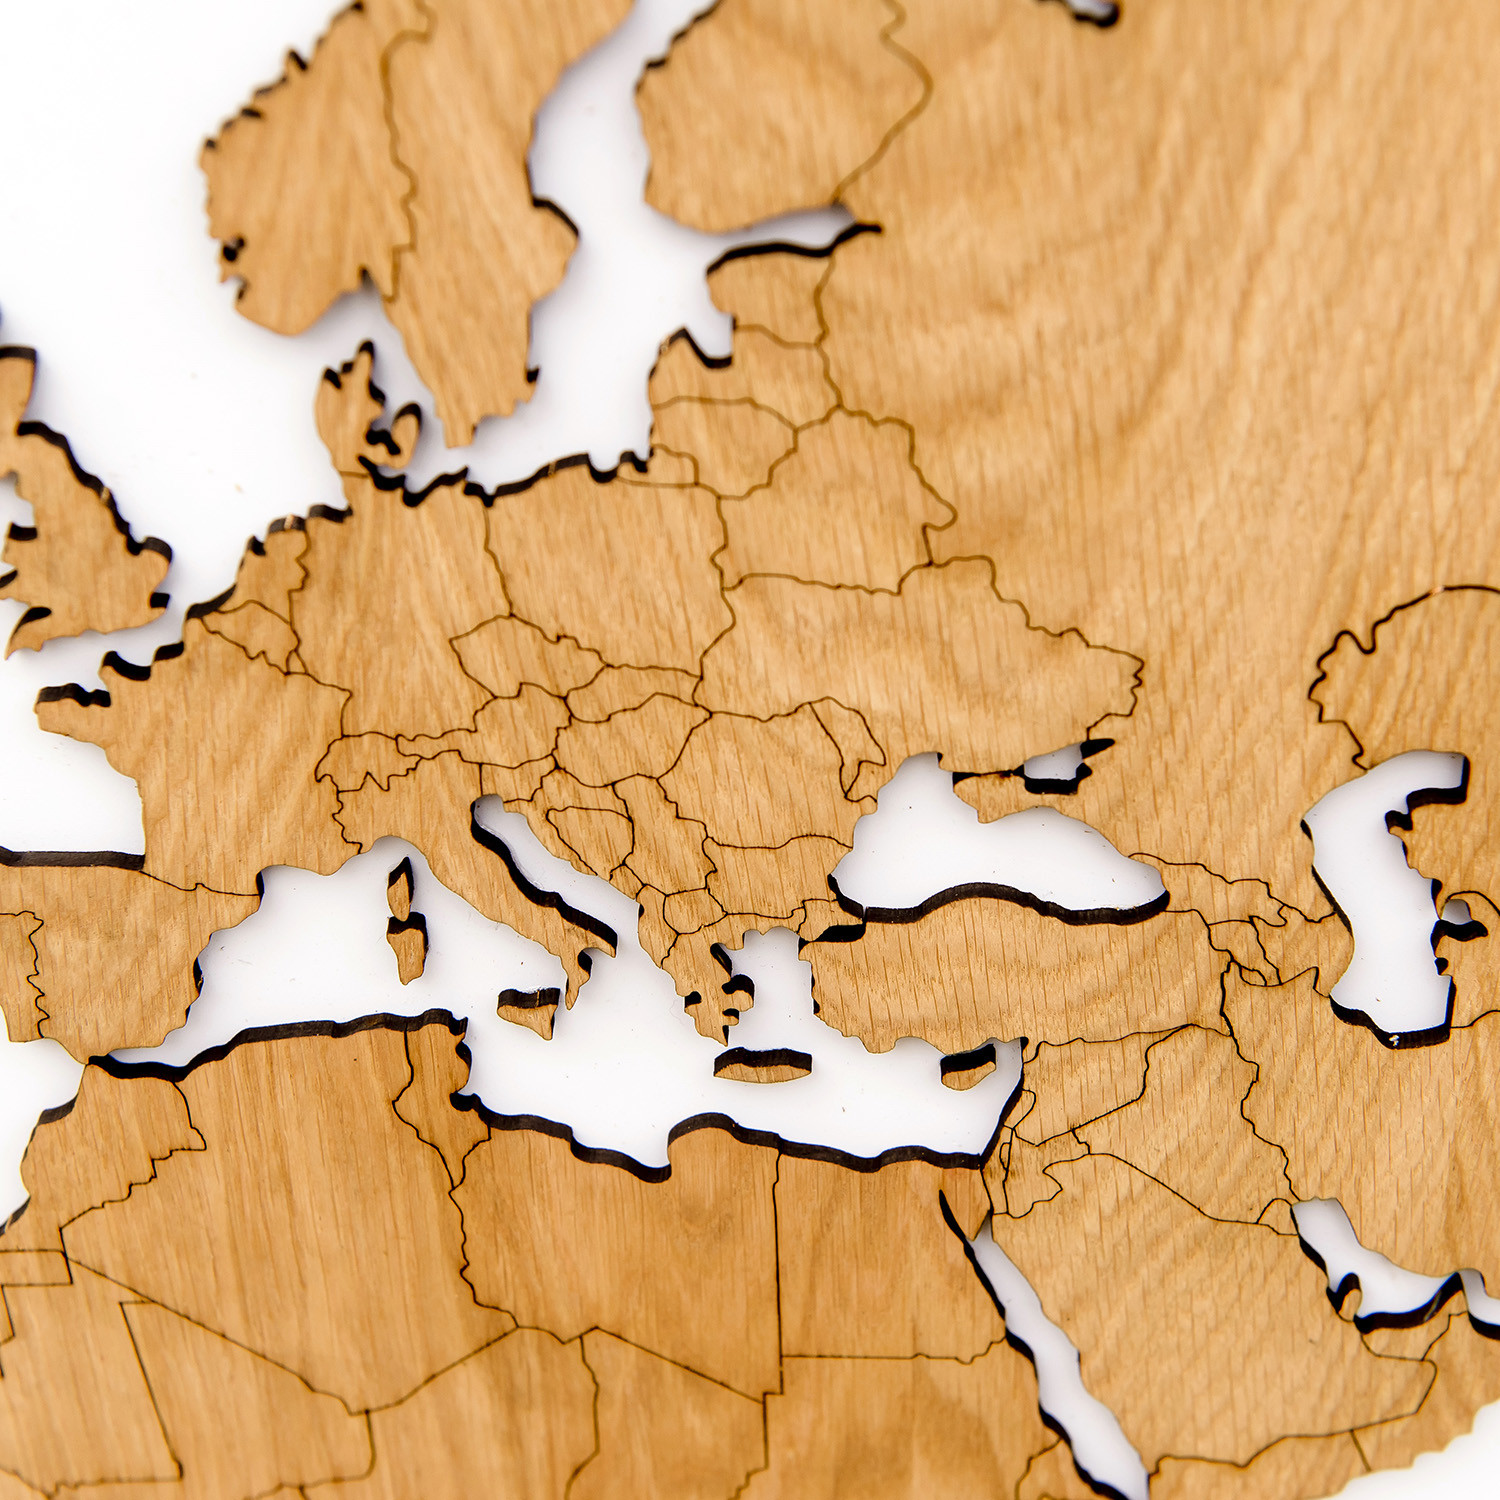 Luxury Wooden Wall Map Decoration Exclusive Oak // 1802-02 - MiMi ...